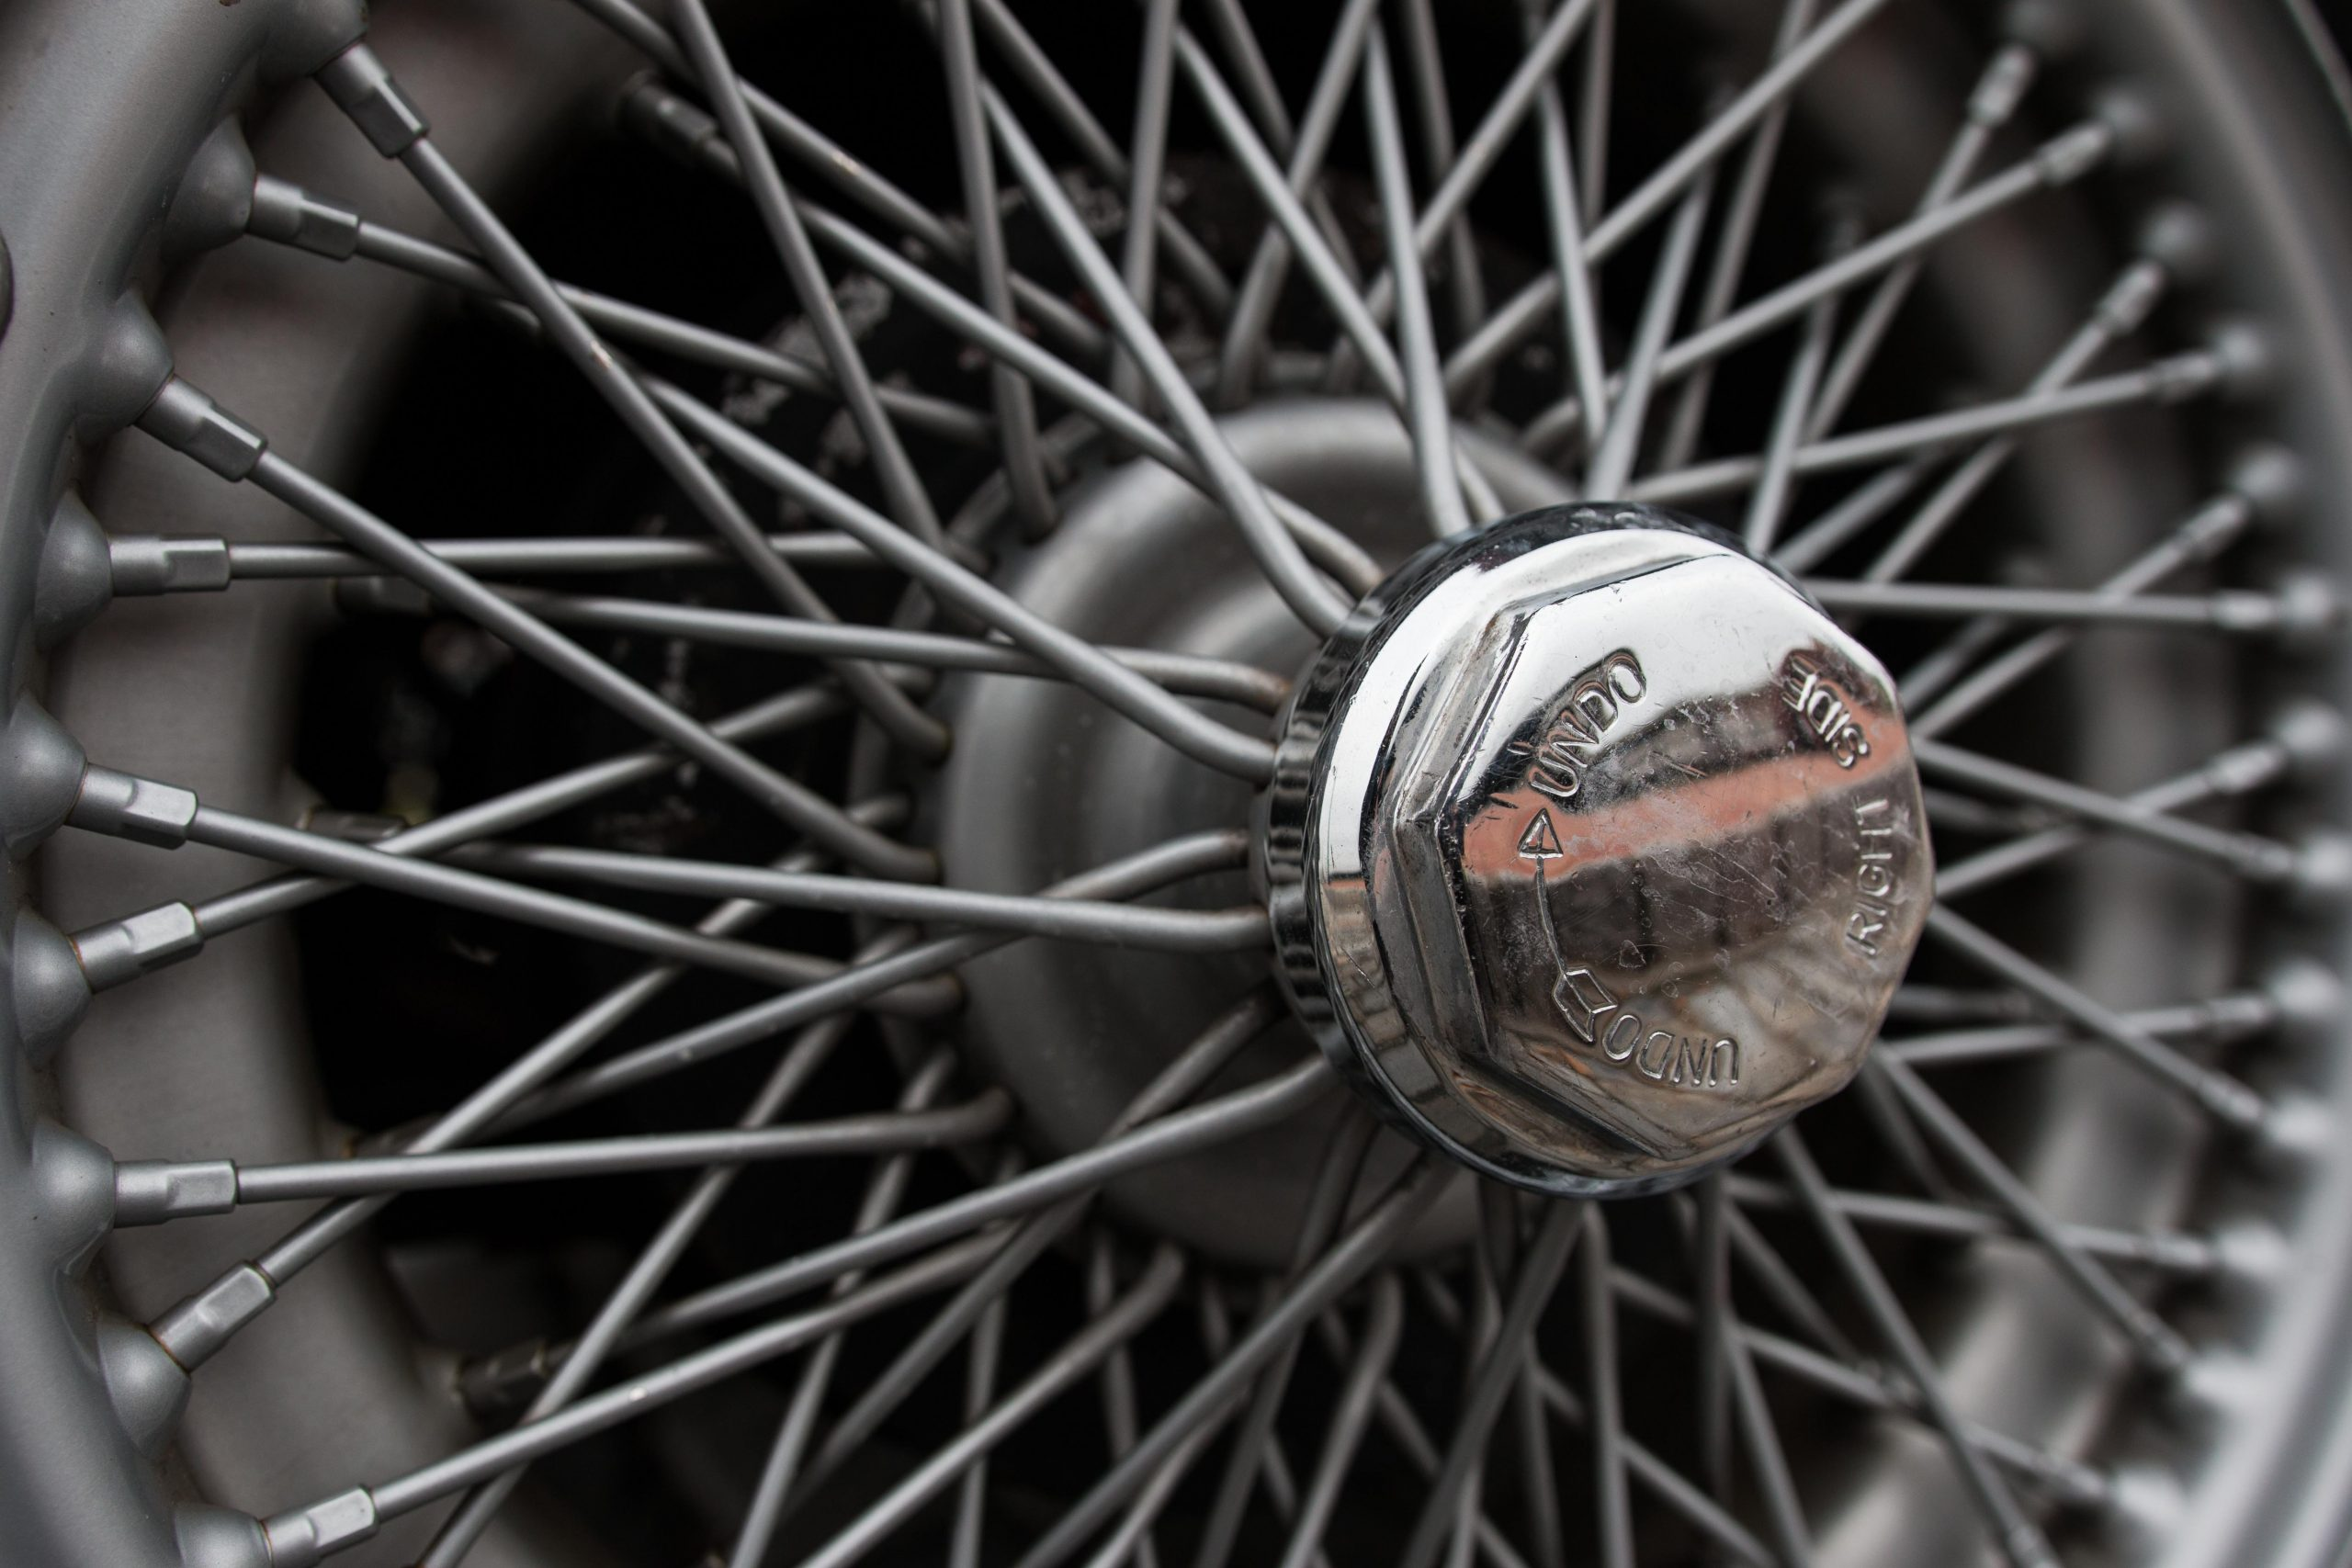 1969 MG MGC wheel spokes and hub detail